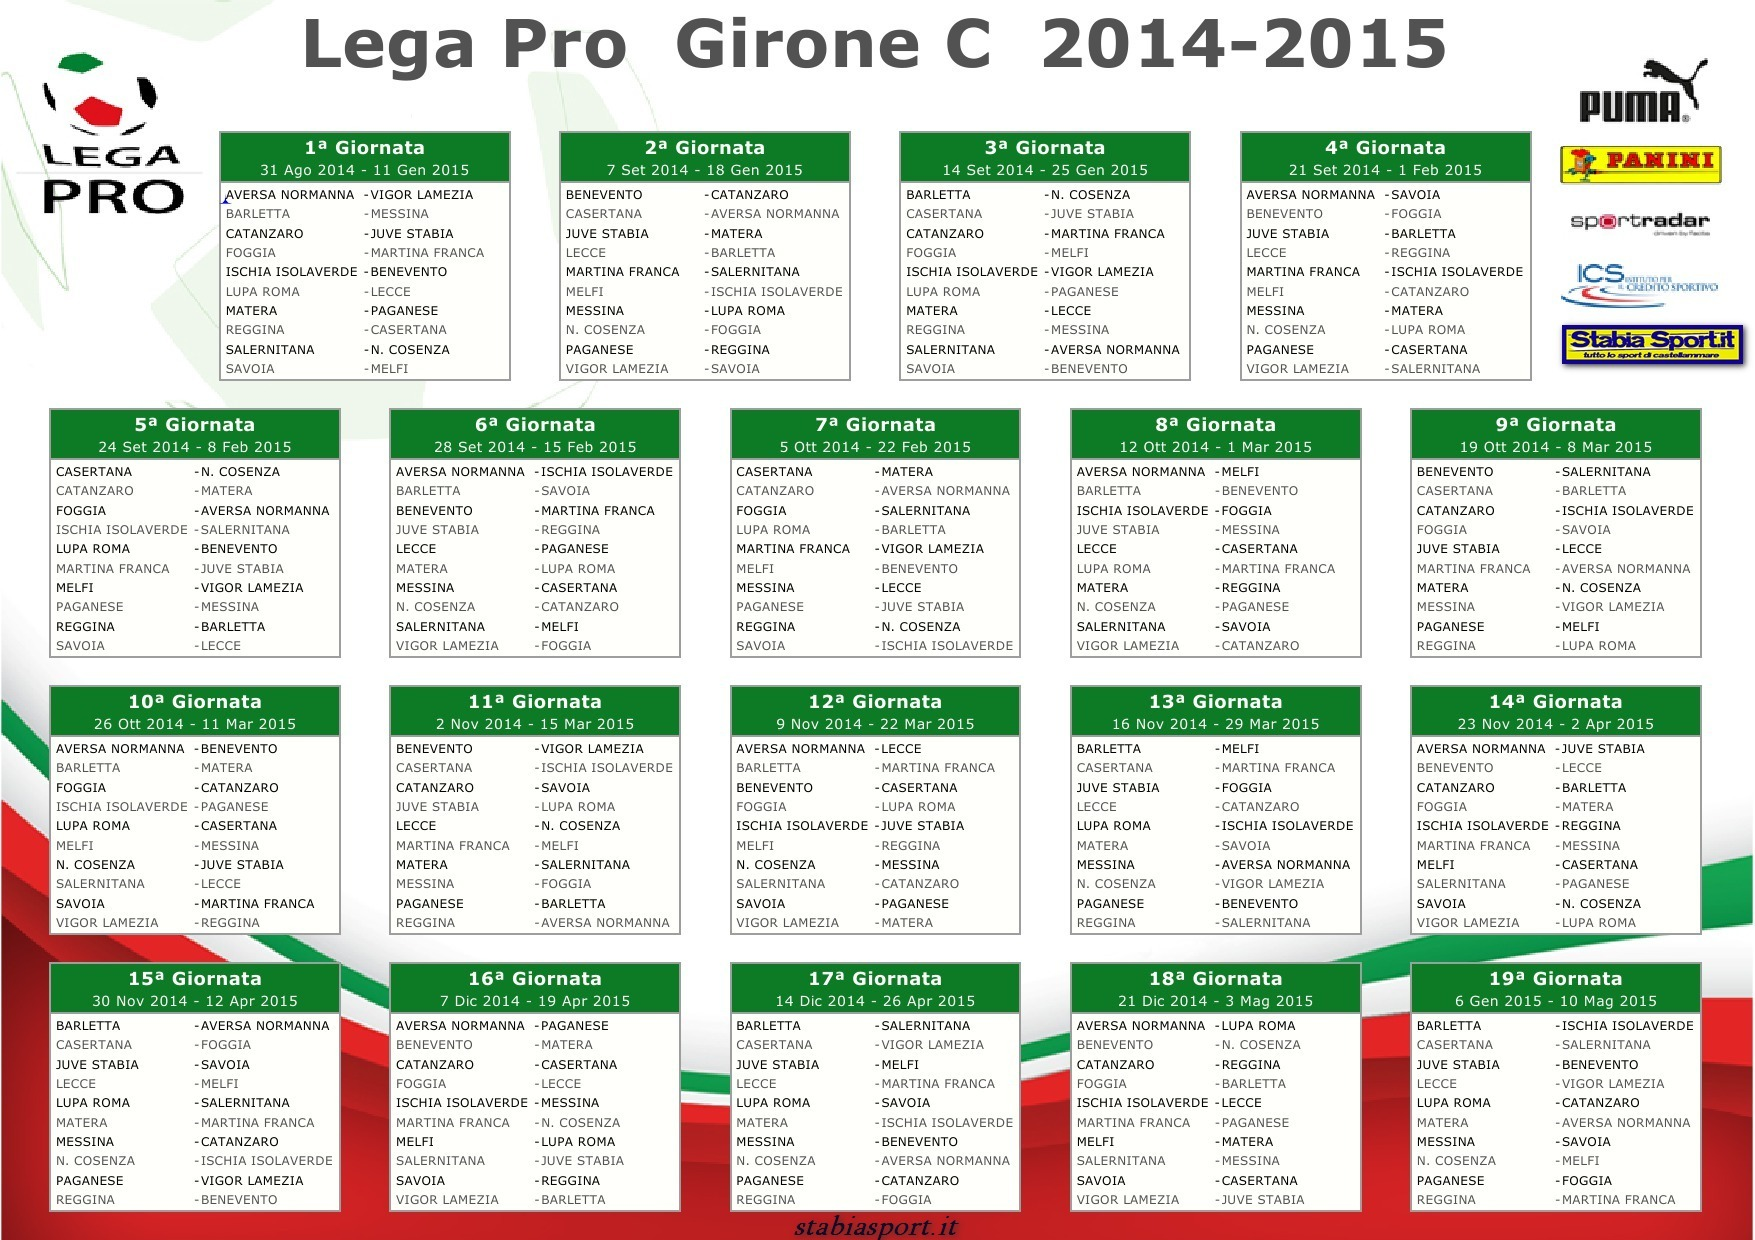 Calendario Lega Pro Lecce.Calcio Serie B Stabiasport It